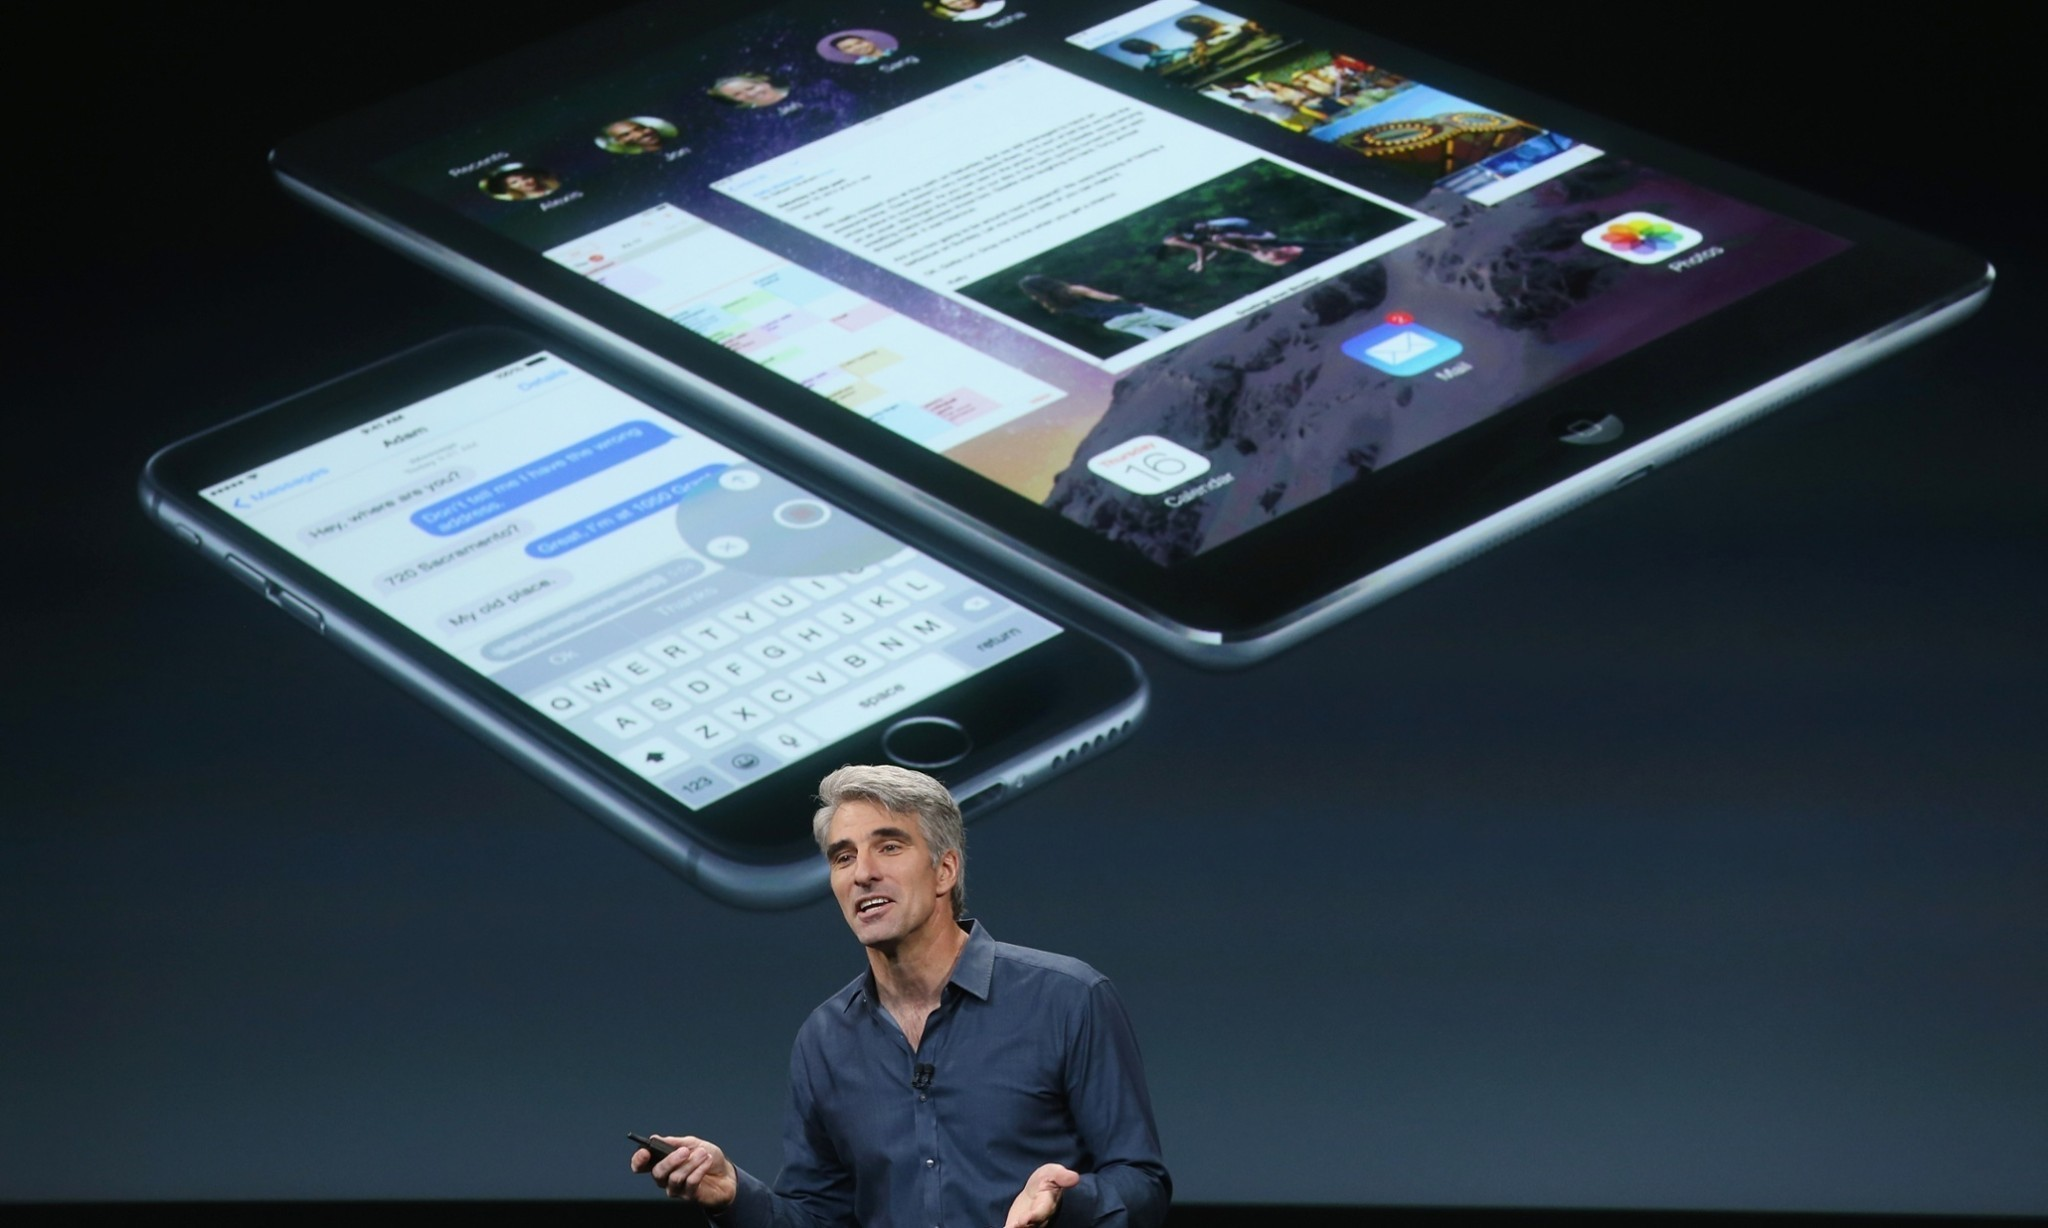 Does the new Apple iPad look familiar? That's not a coincidence